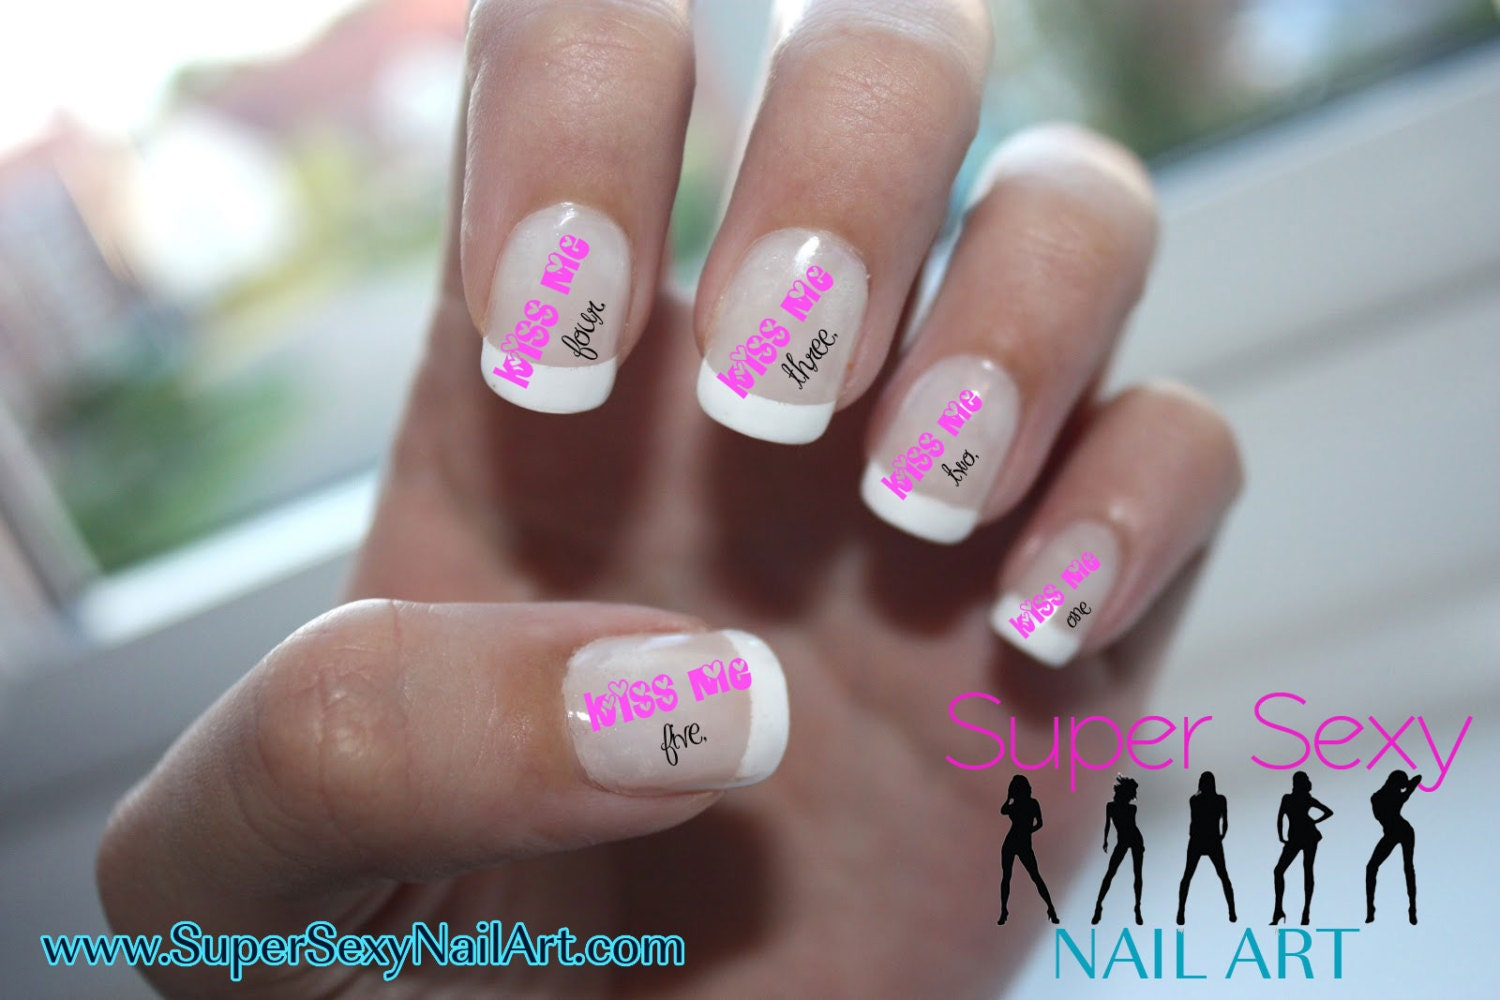 New Years Eve Kiss Me Countdown Nail Art Water Transfer Decal - Waterslide Paper - Water Slide Paper - SuperSexyNailArt